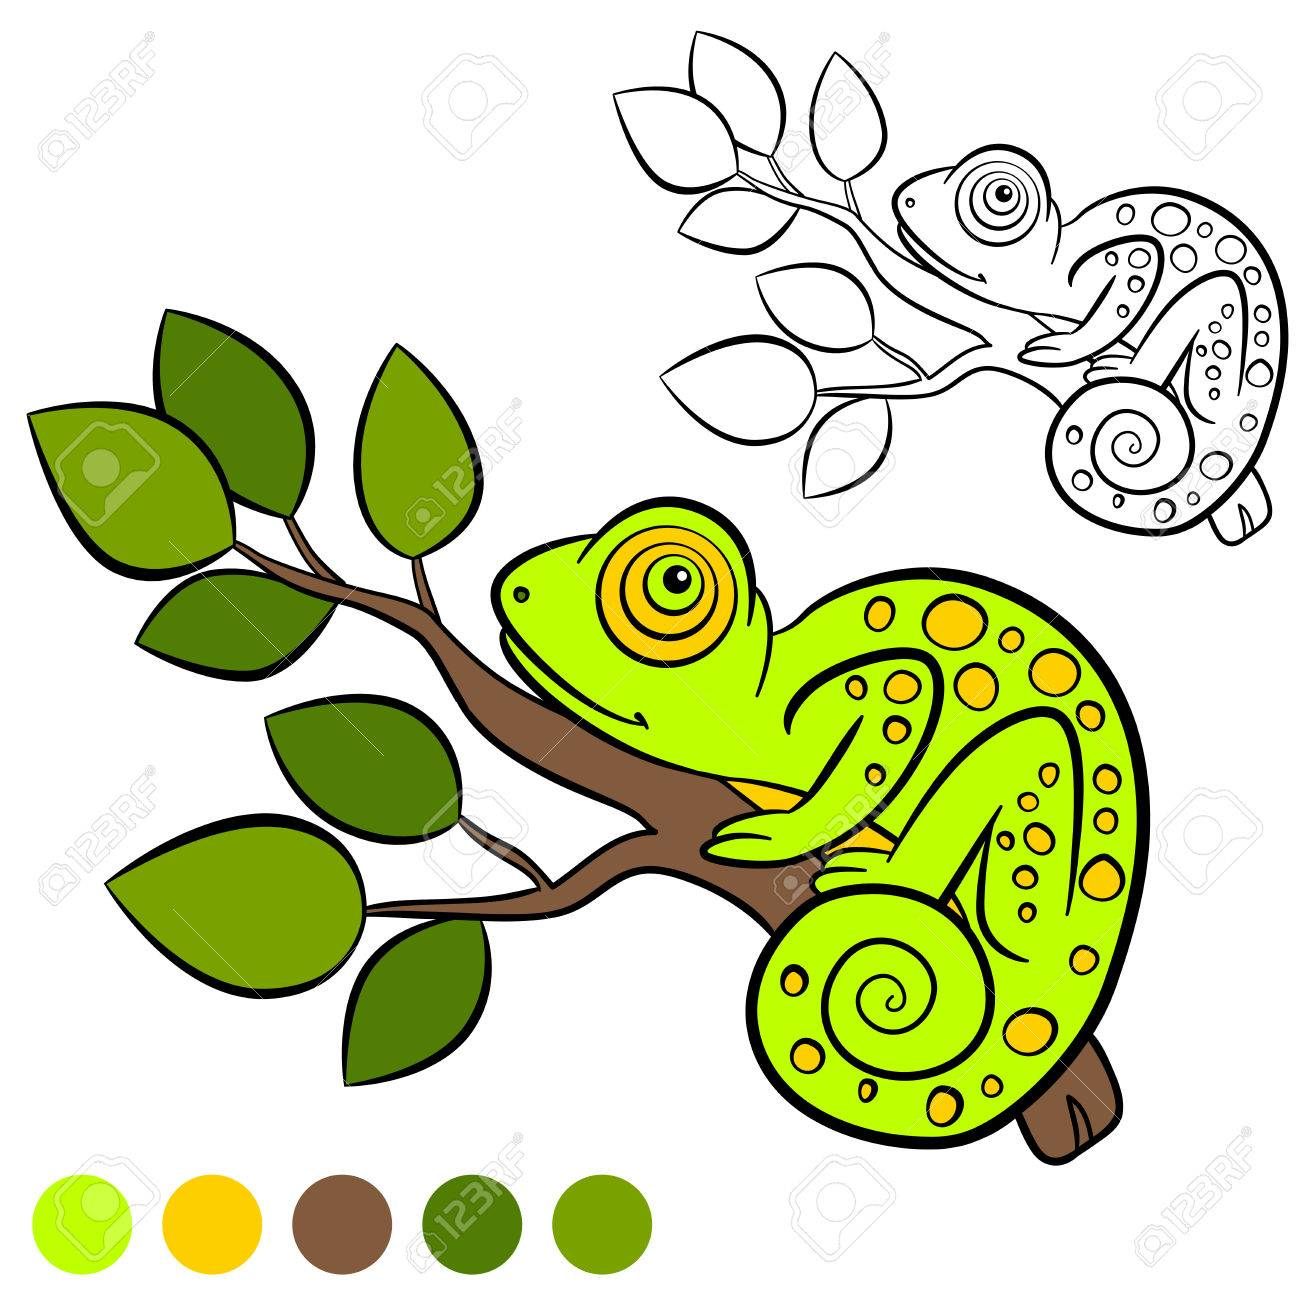 Coloring Page. Color Me: Chameleon. Little Cute Green Chameleon ...